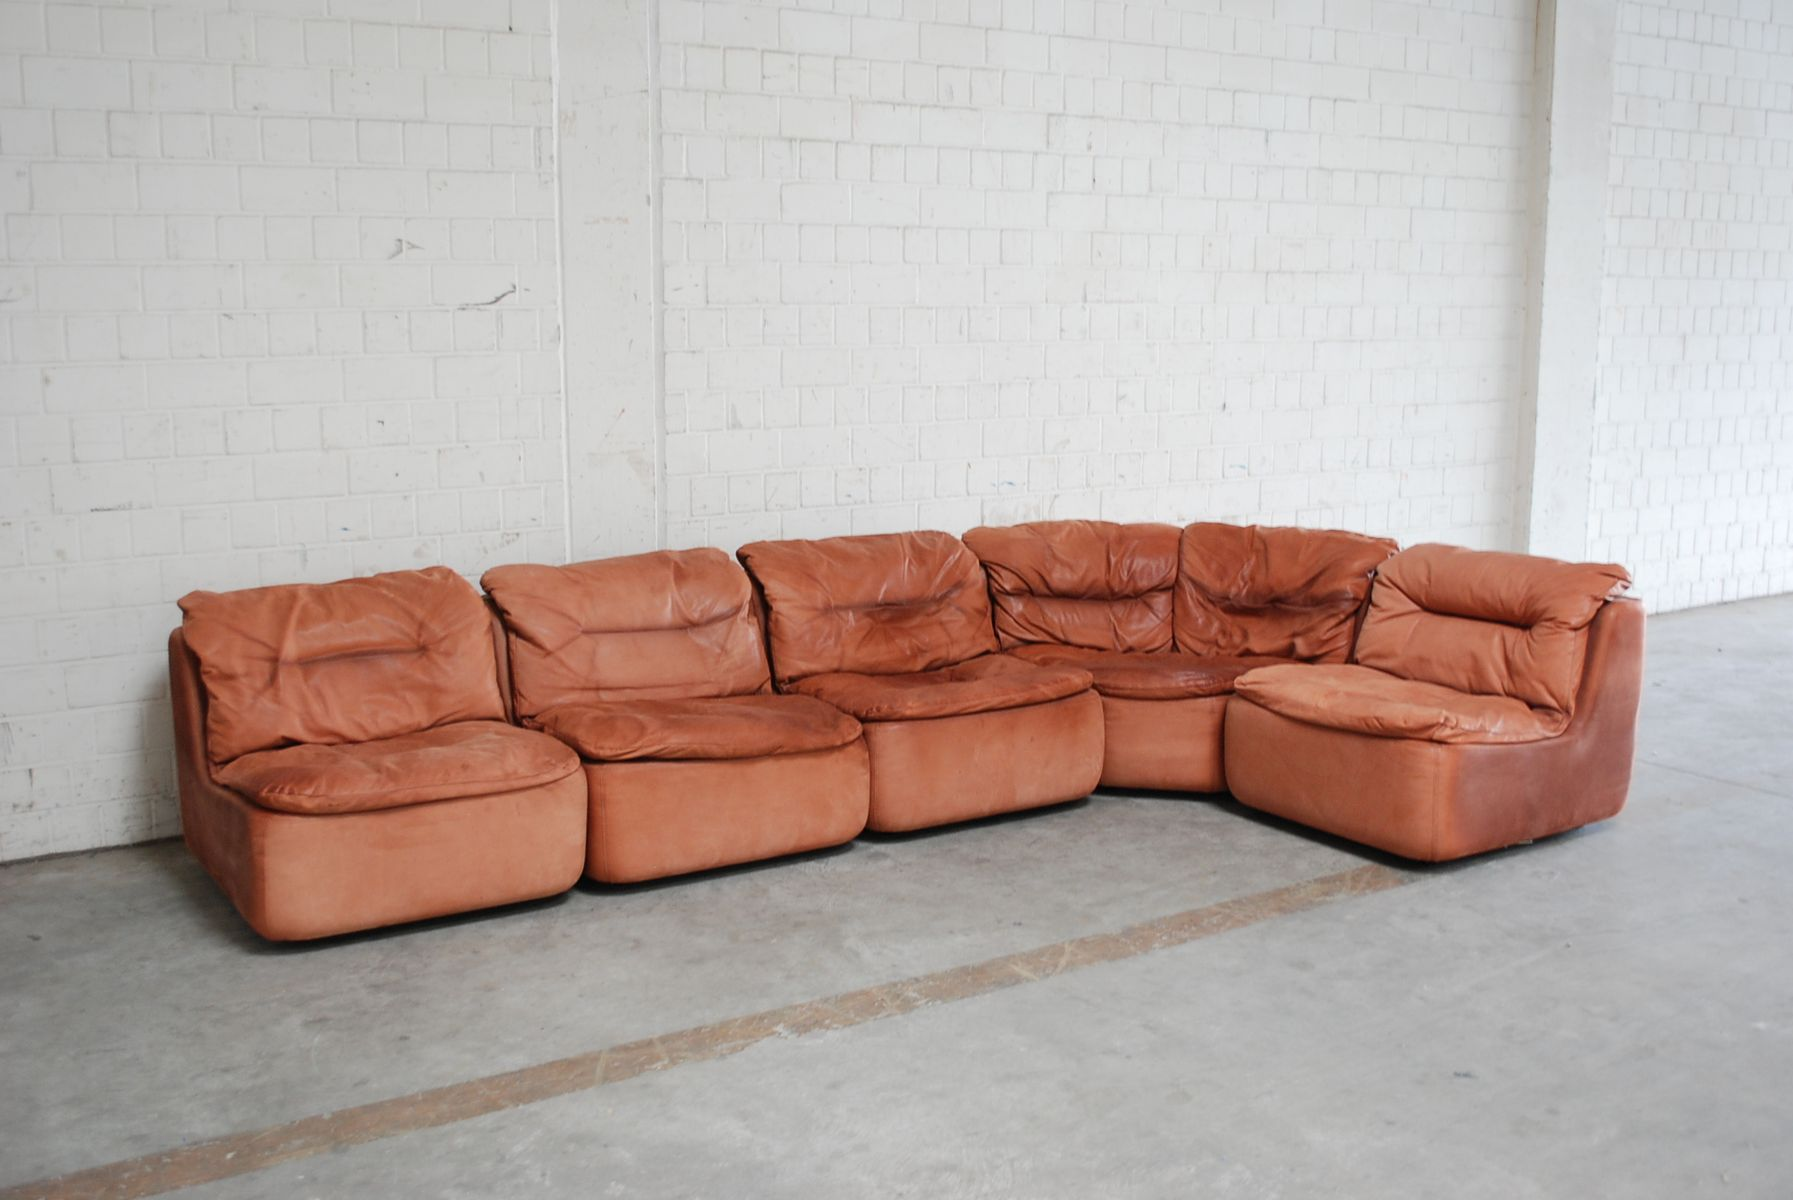 Plus Modular Leather Sofa By Friedrich Hill For Walter